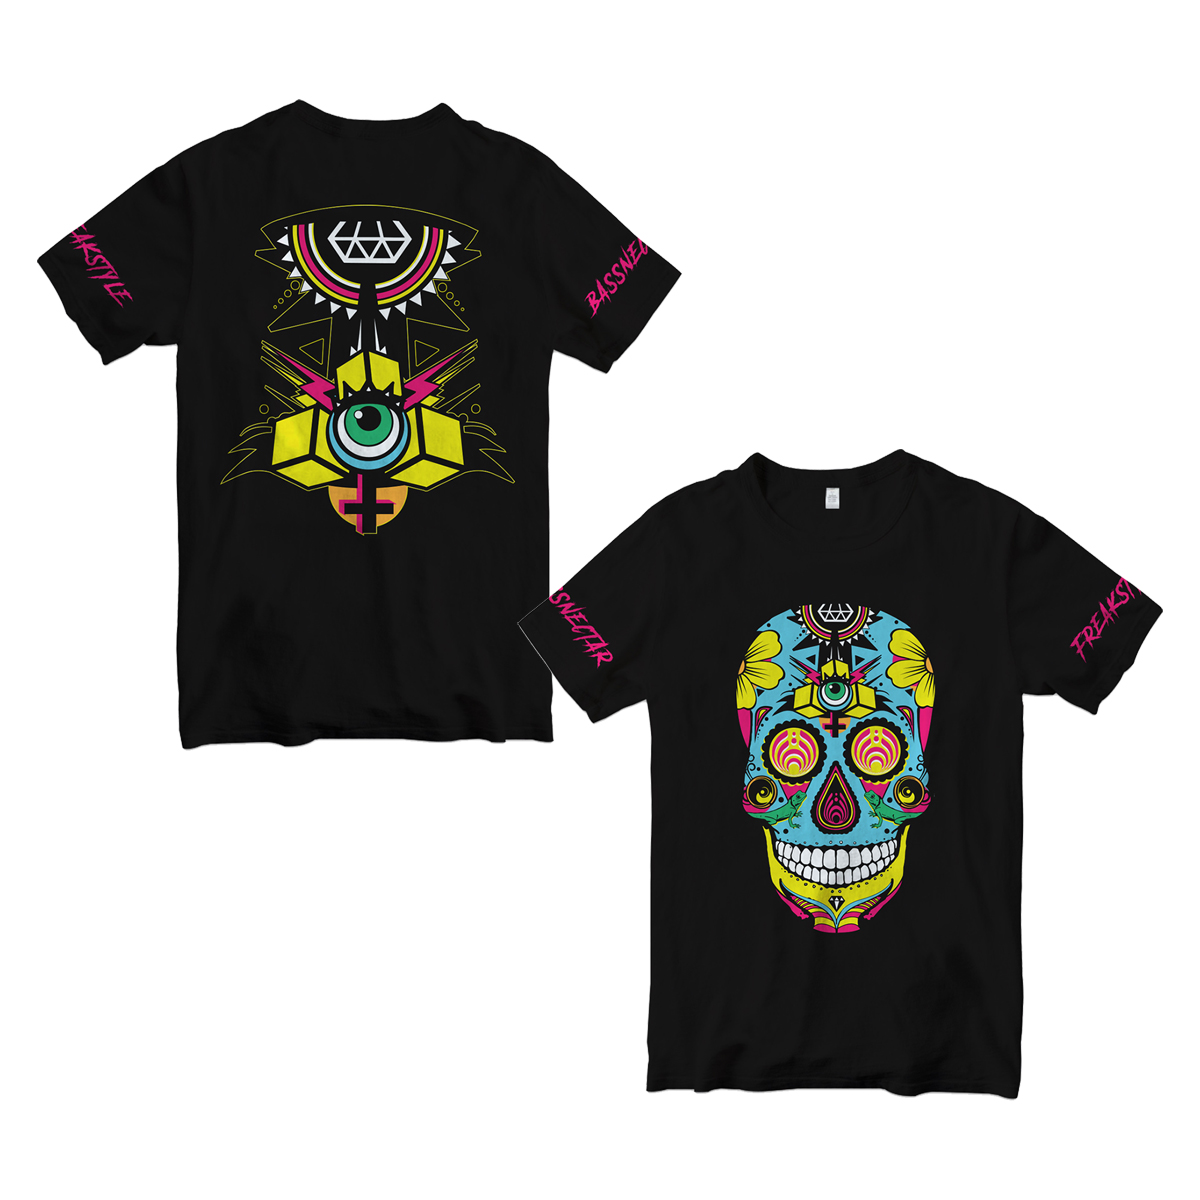 Freakstyle 2019 Event Tee